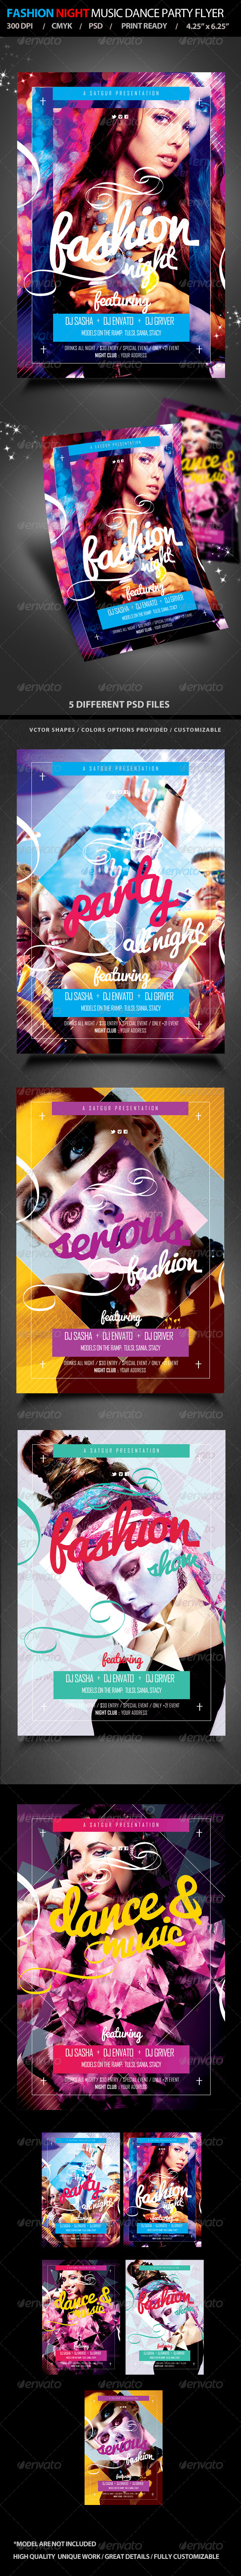 Fashion Night Music Dance Party Flyer - Clubs & Parties Events